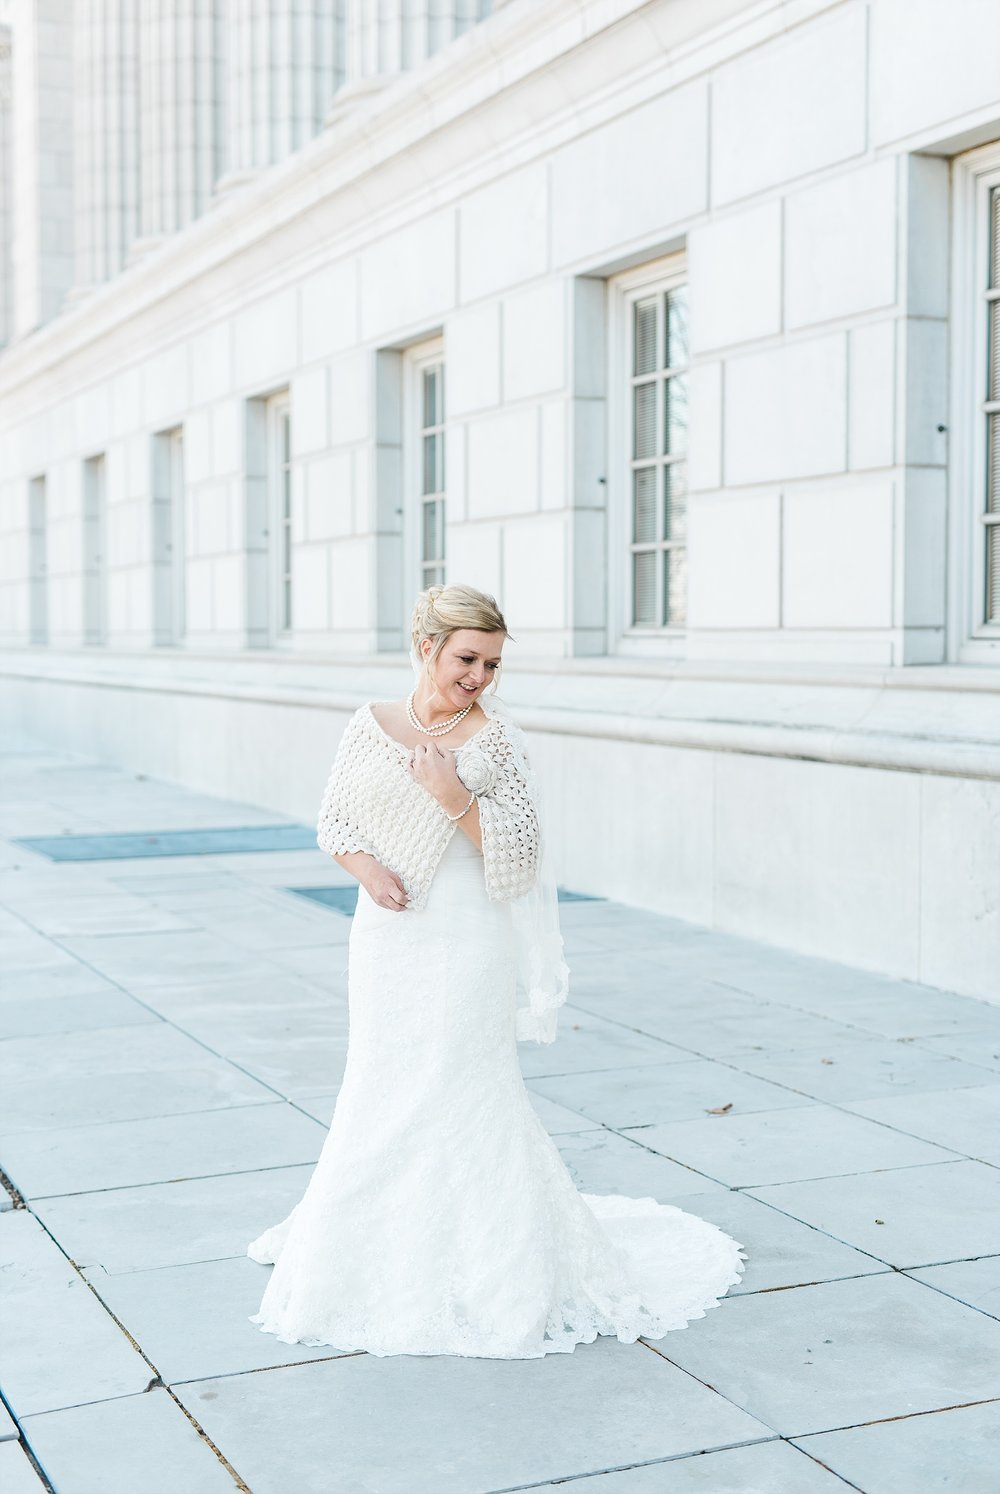 Light and Airy Spring Wedding Downtown Jefferson City Missouri State Capitol Millbottom_0019.jpg